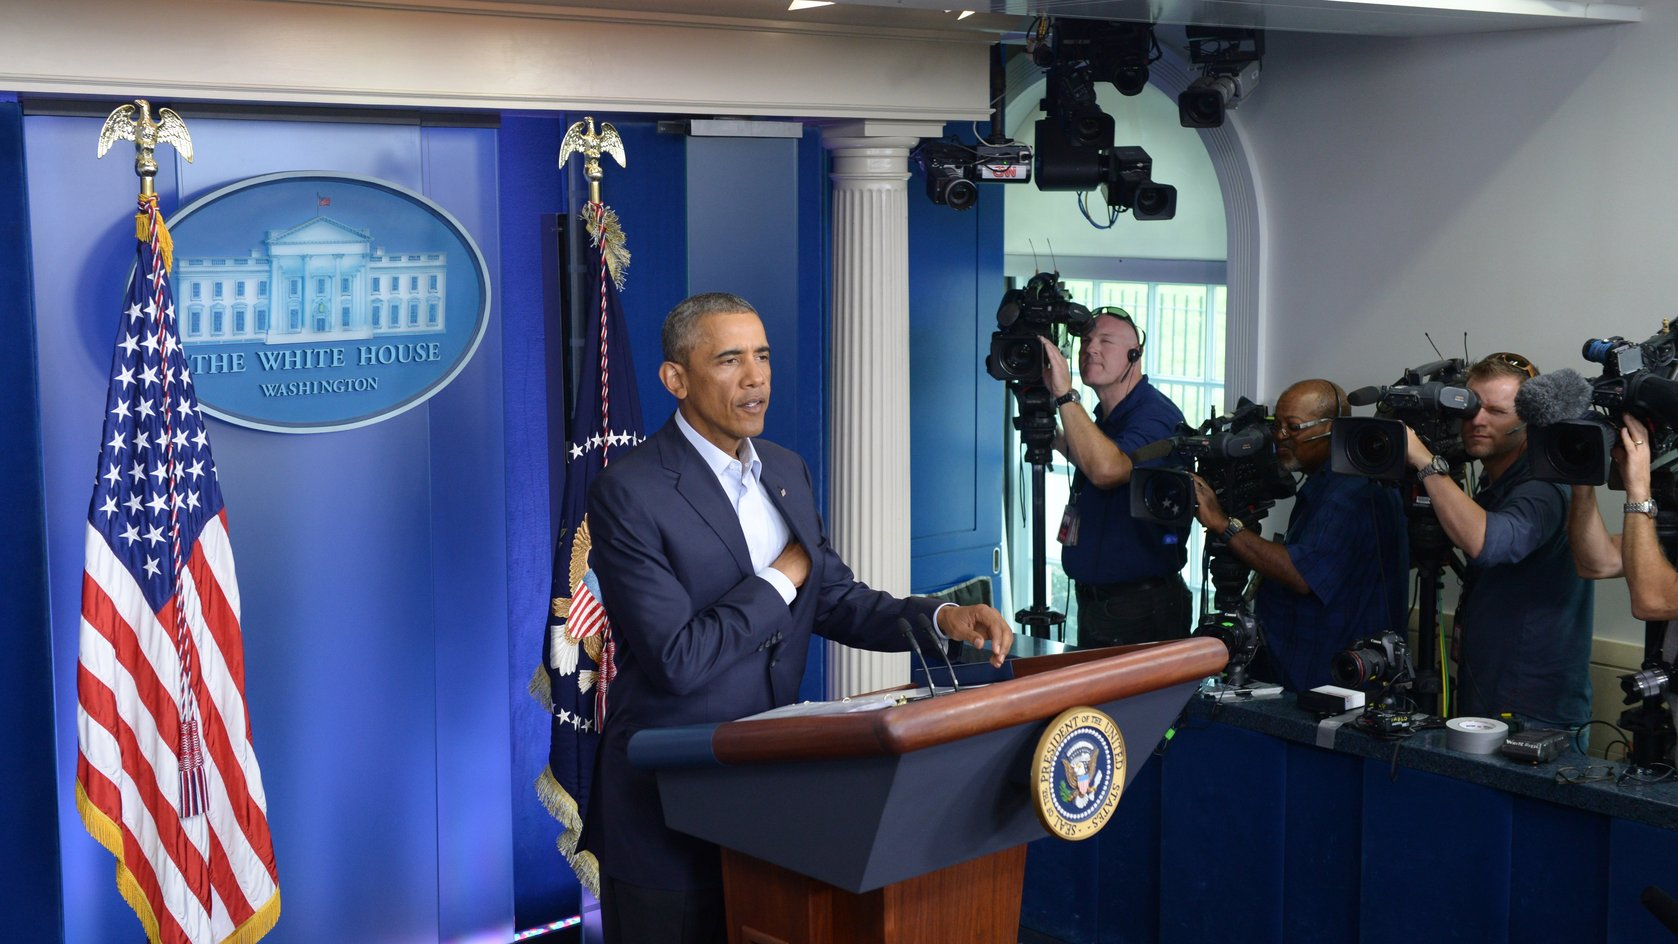 WASHINGTON D.C., Aug. 18, 2014 (Xinhua) -- U.S. President Barack Obama speaks at the press briefing room of the White House in Washington D.C., the  United States, Aug. 18, 2014